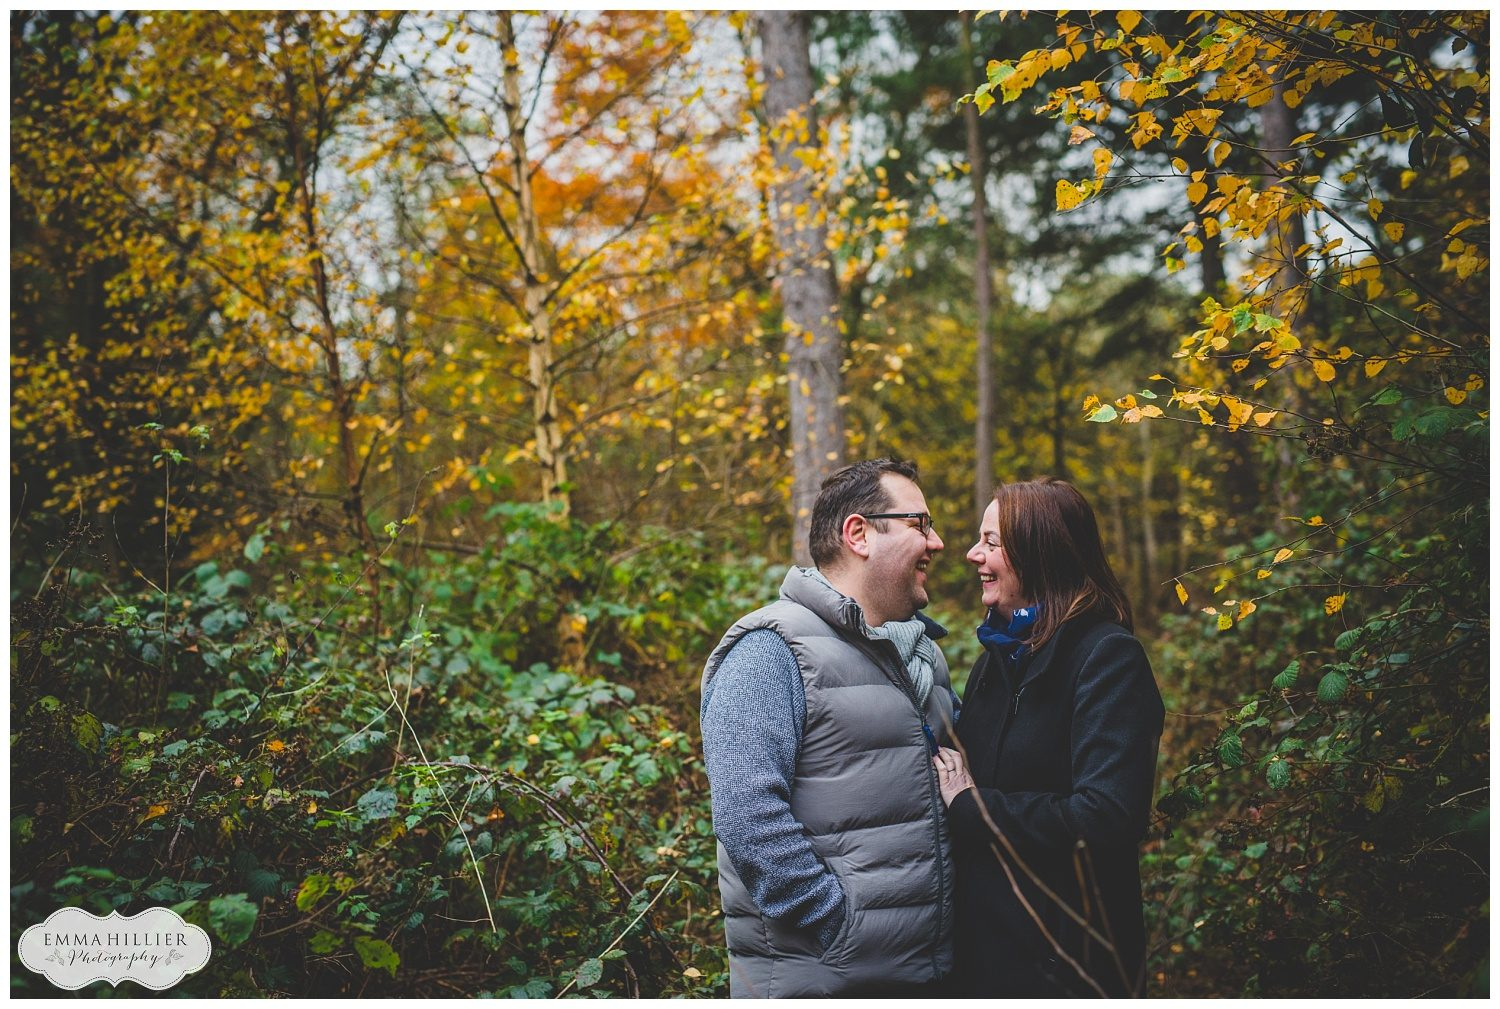 Formby Pinewoods pre-wedding shoot